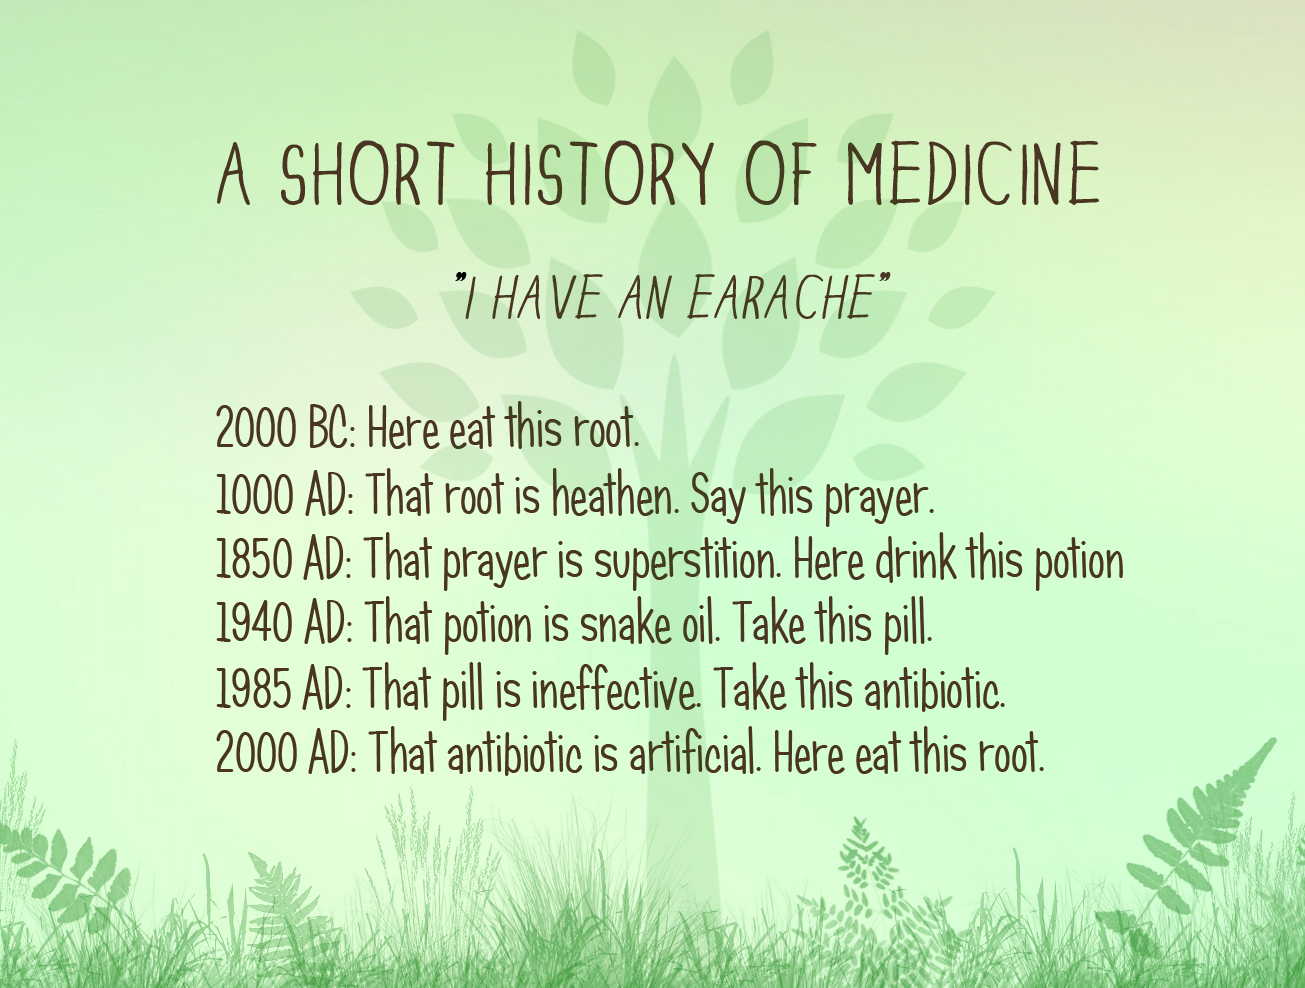 Live Love Believe  : MODERN MEDICAL MIRACLEs